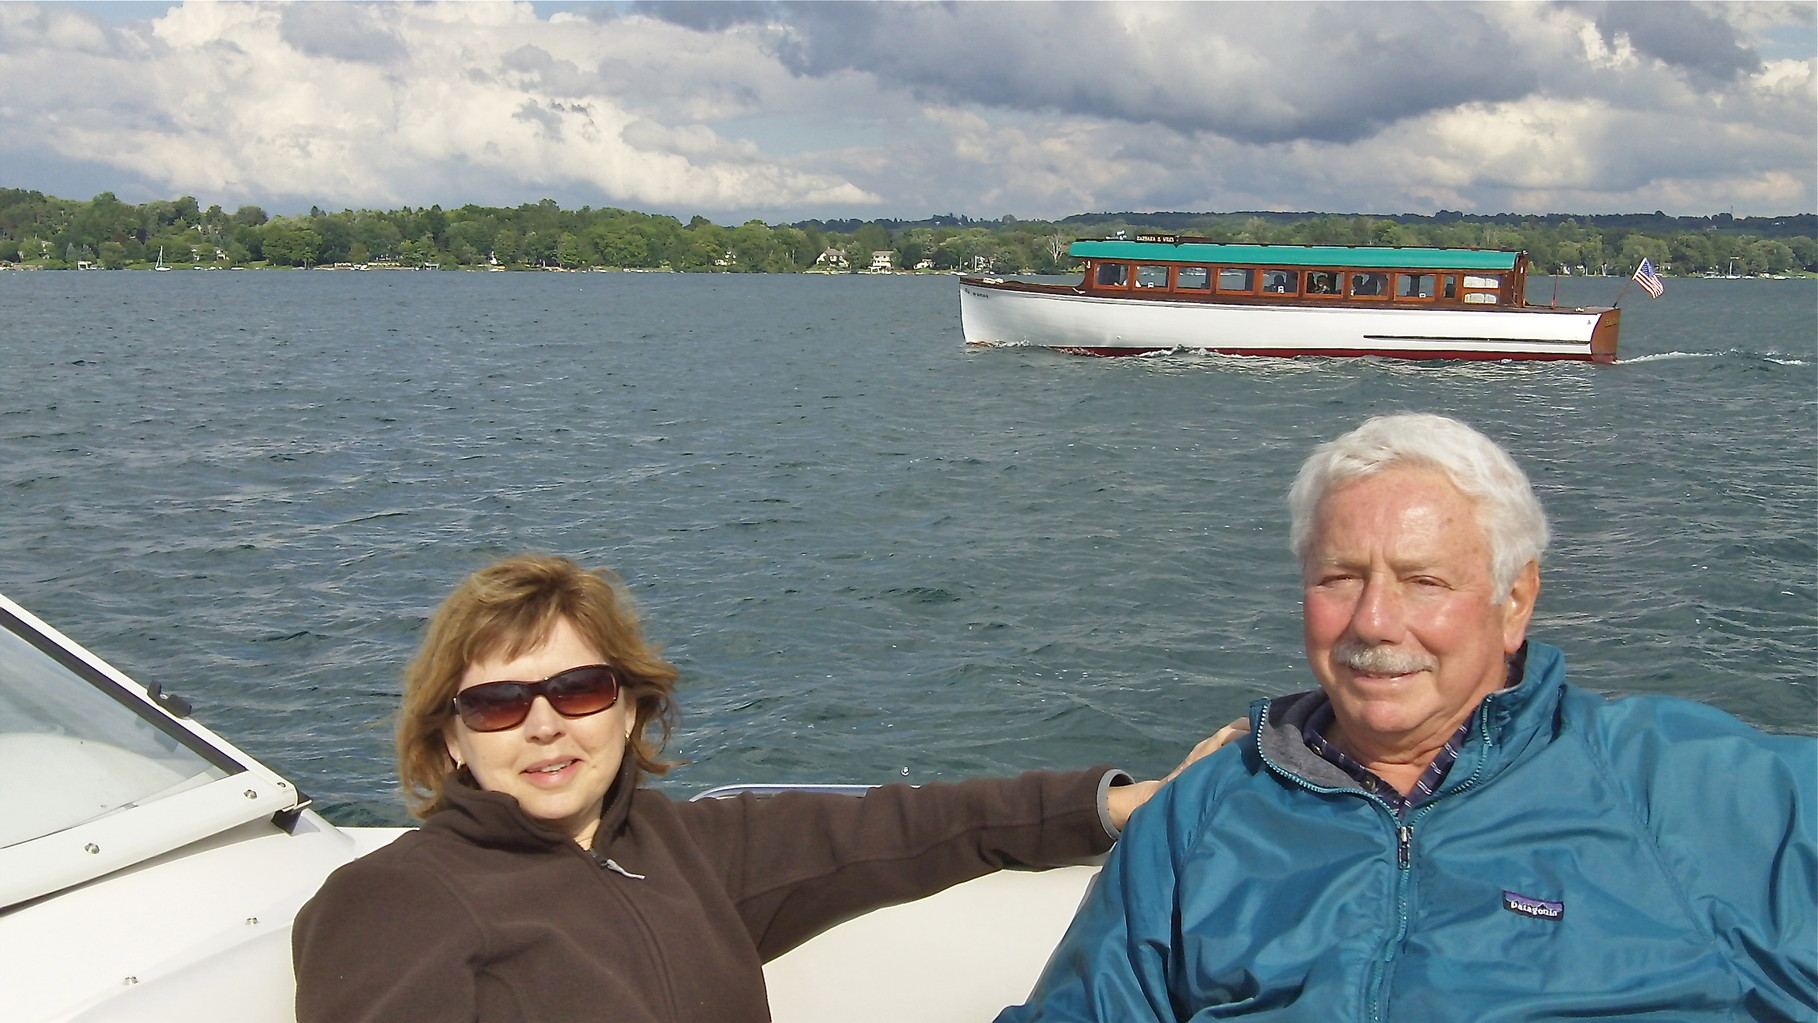 Barbara & Don, mailboat in the background, Skaneateles Lake